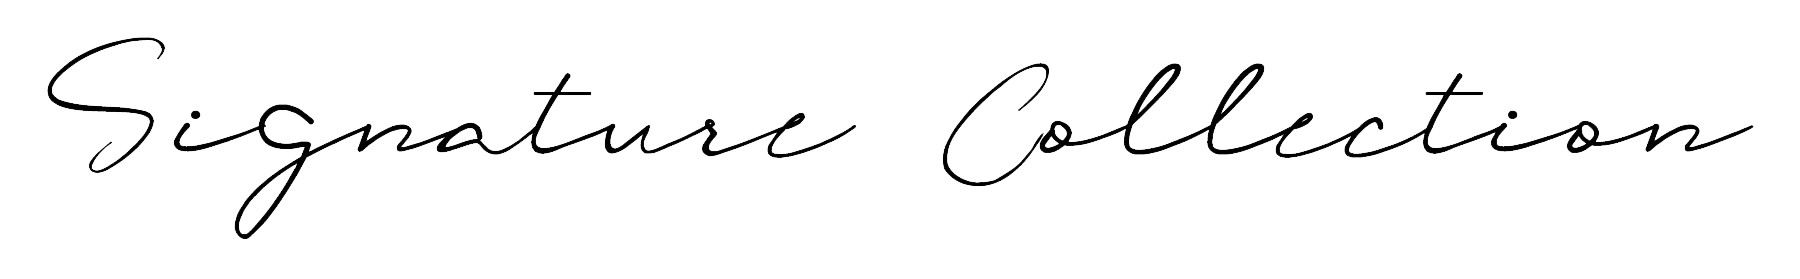 Signature Collection Logo.png